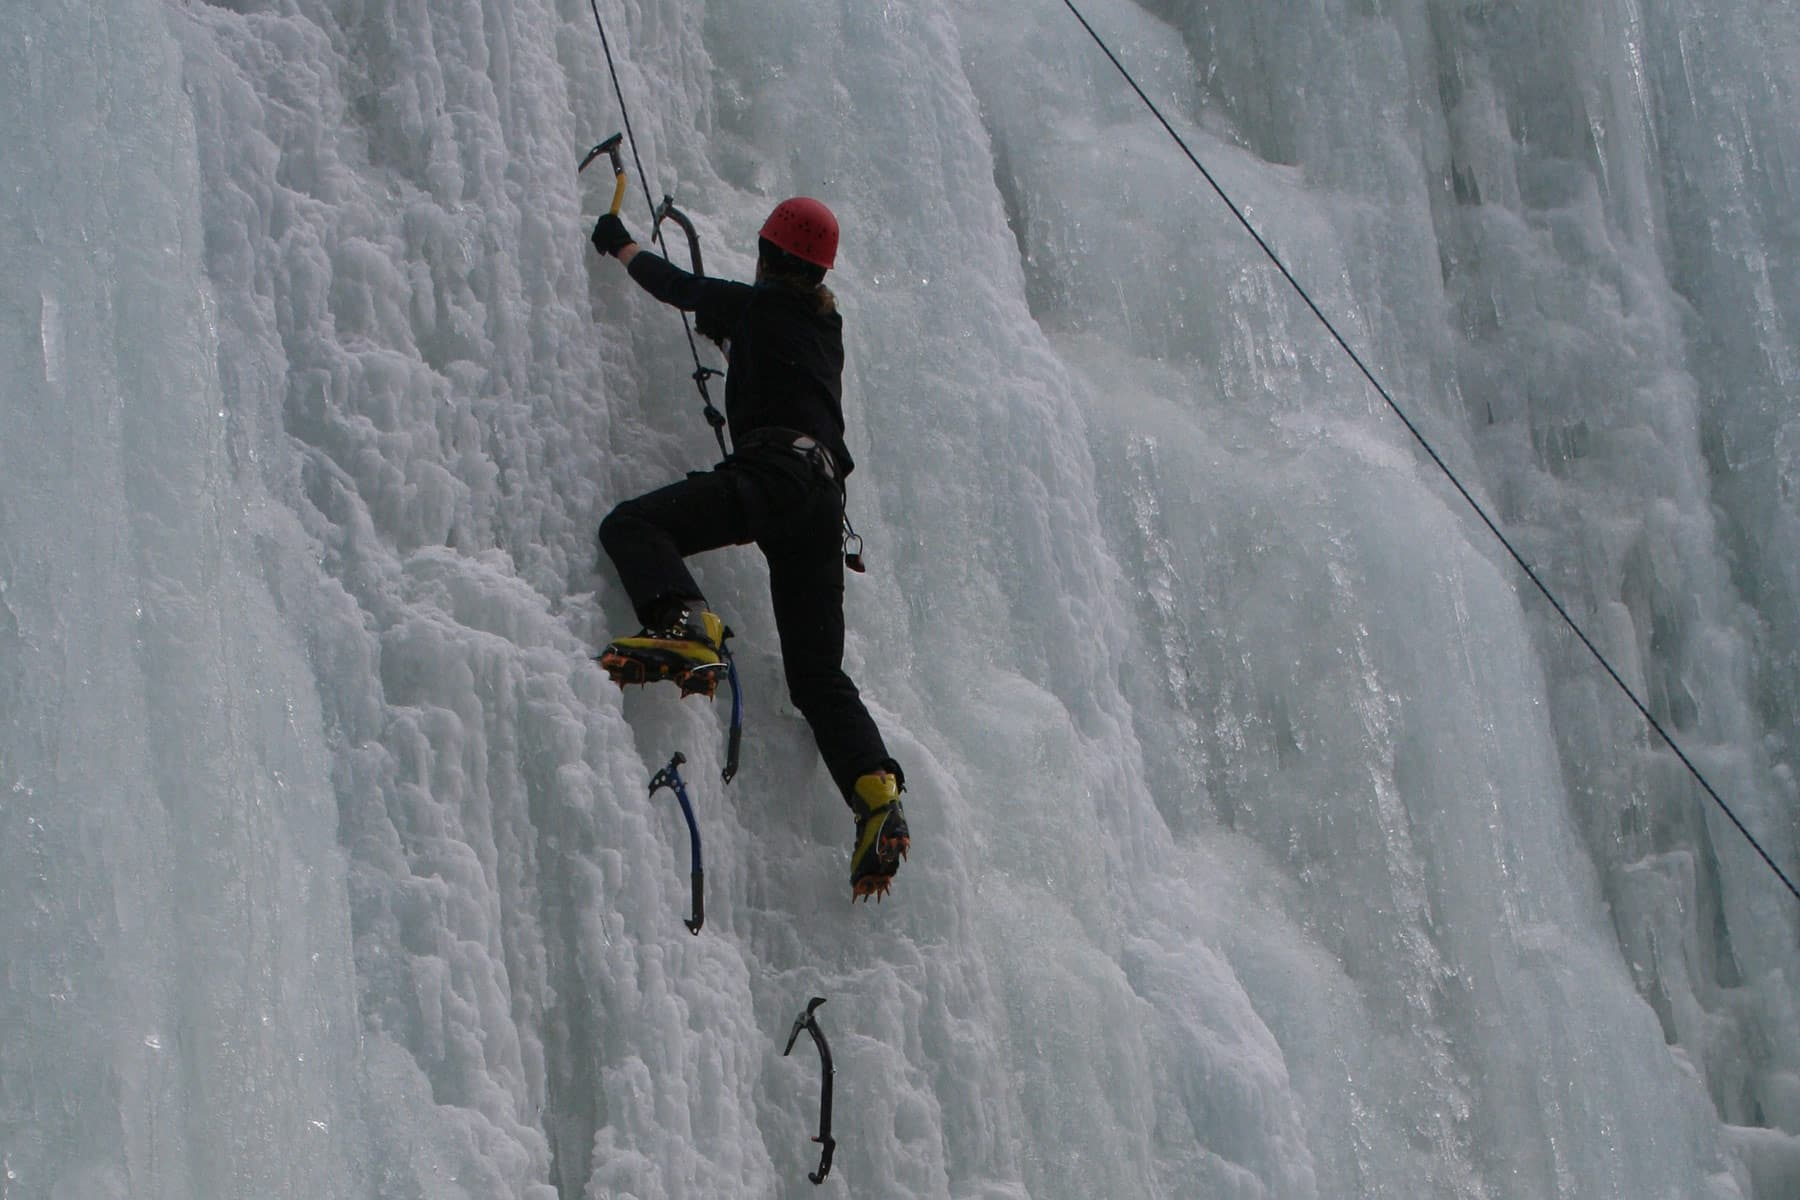 Karwendel beginners ice climbing weekend